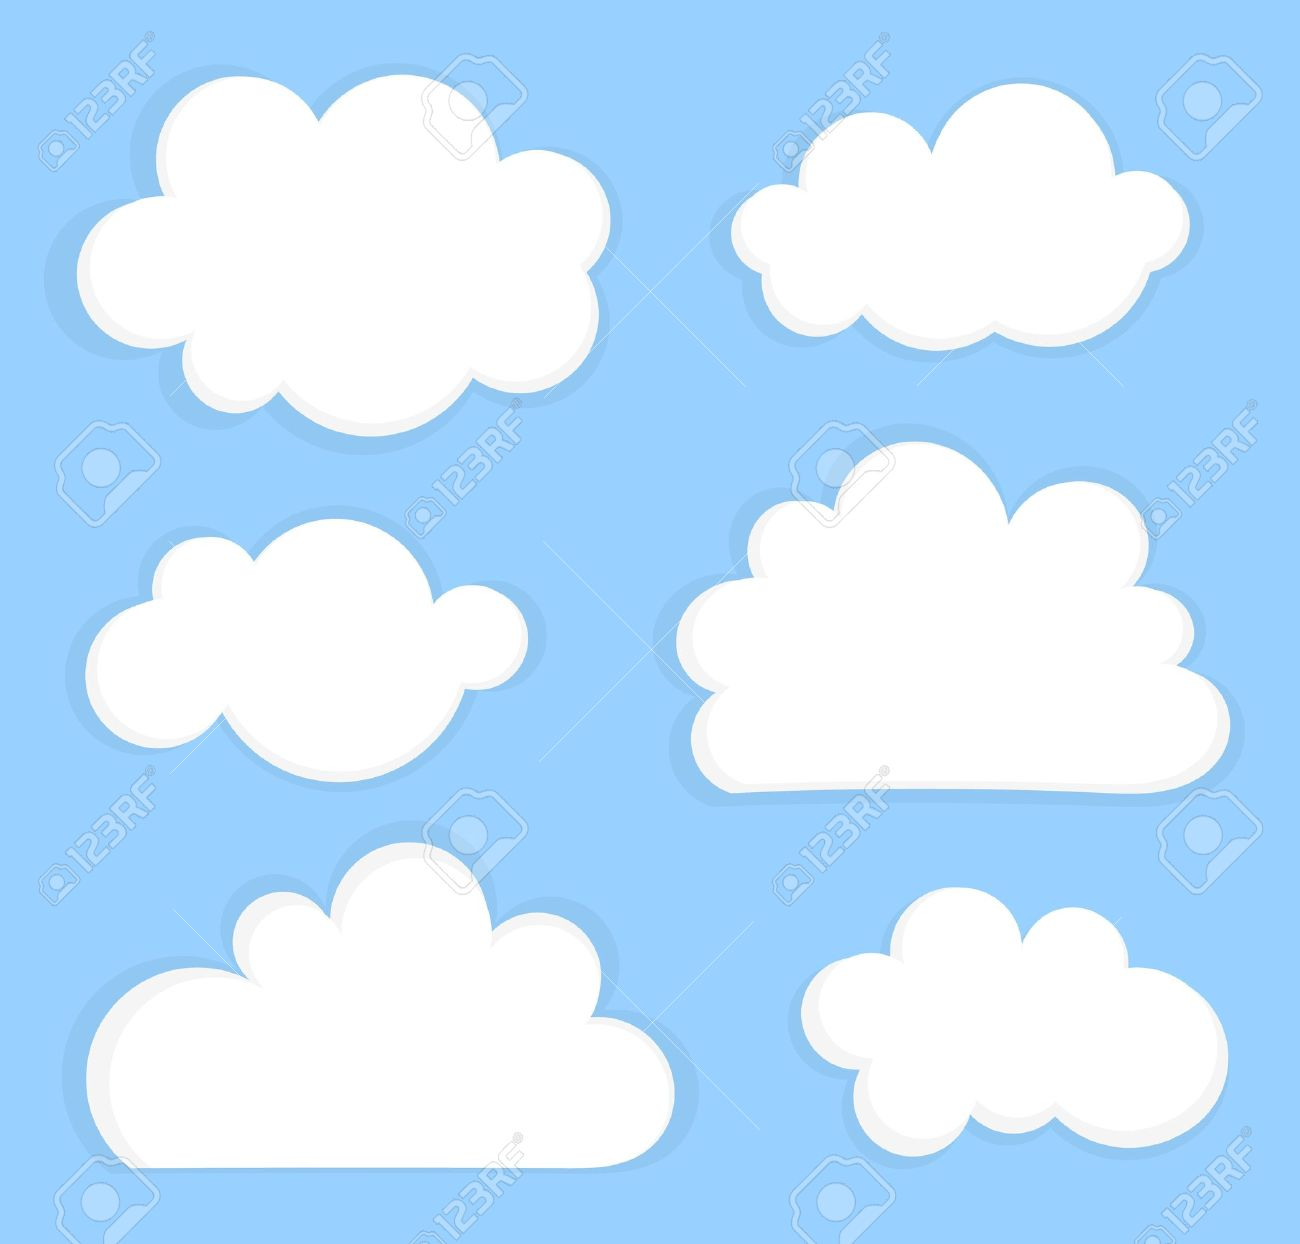 Blue sky with white clouds. Vector illustration Stock Vector - 21137213